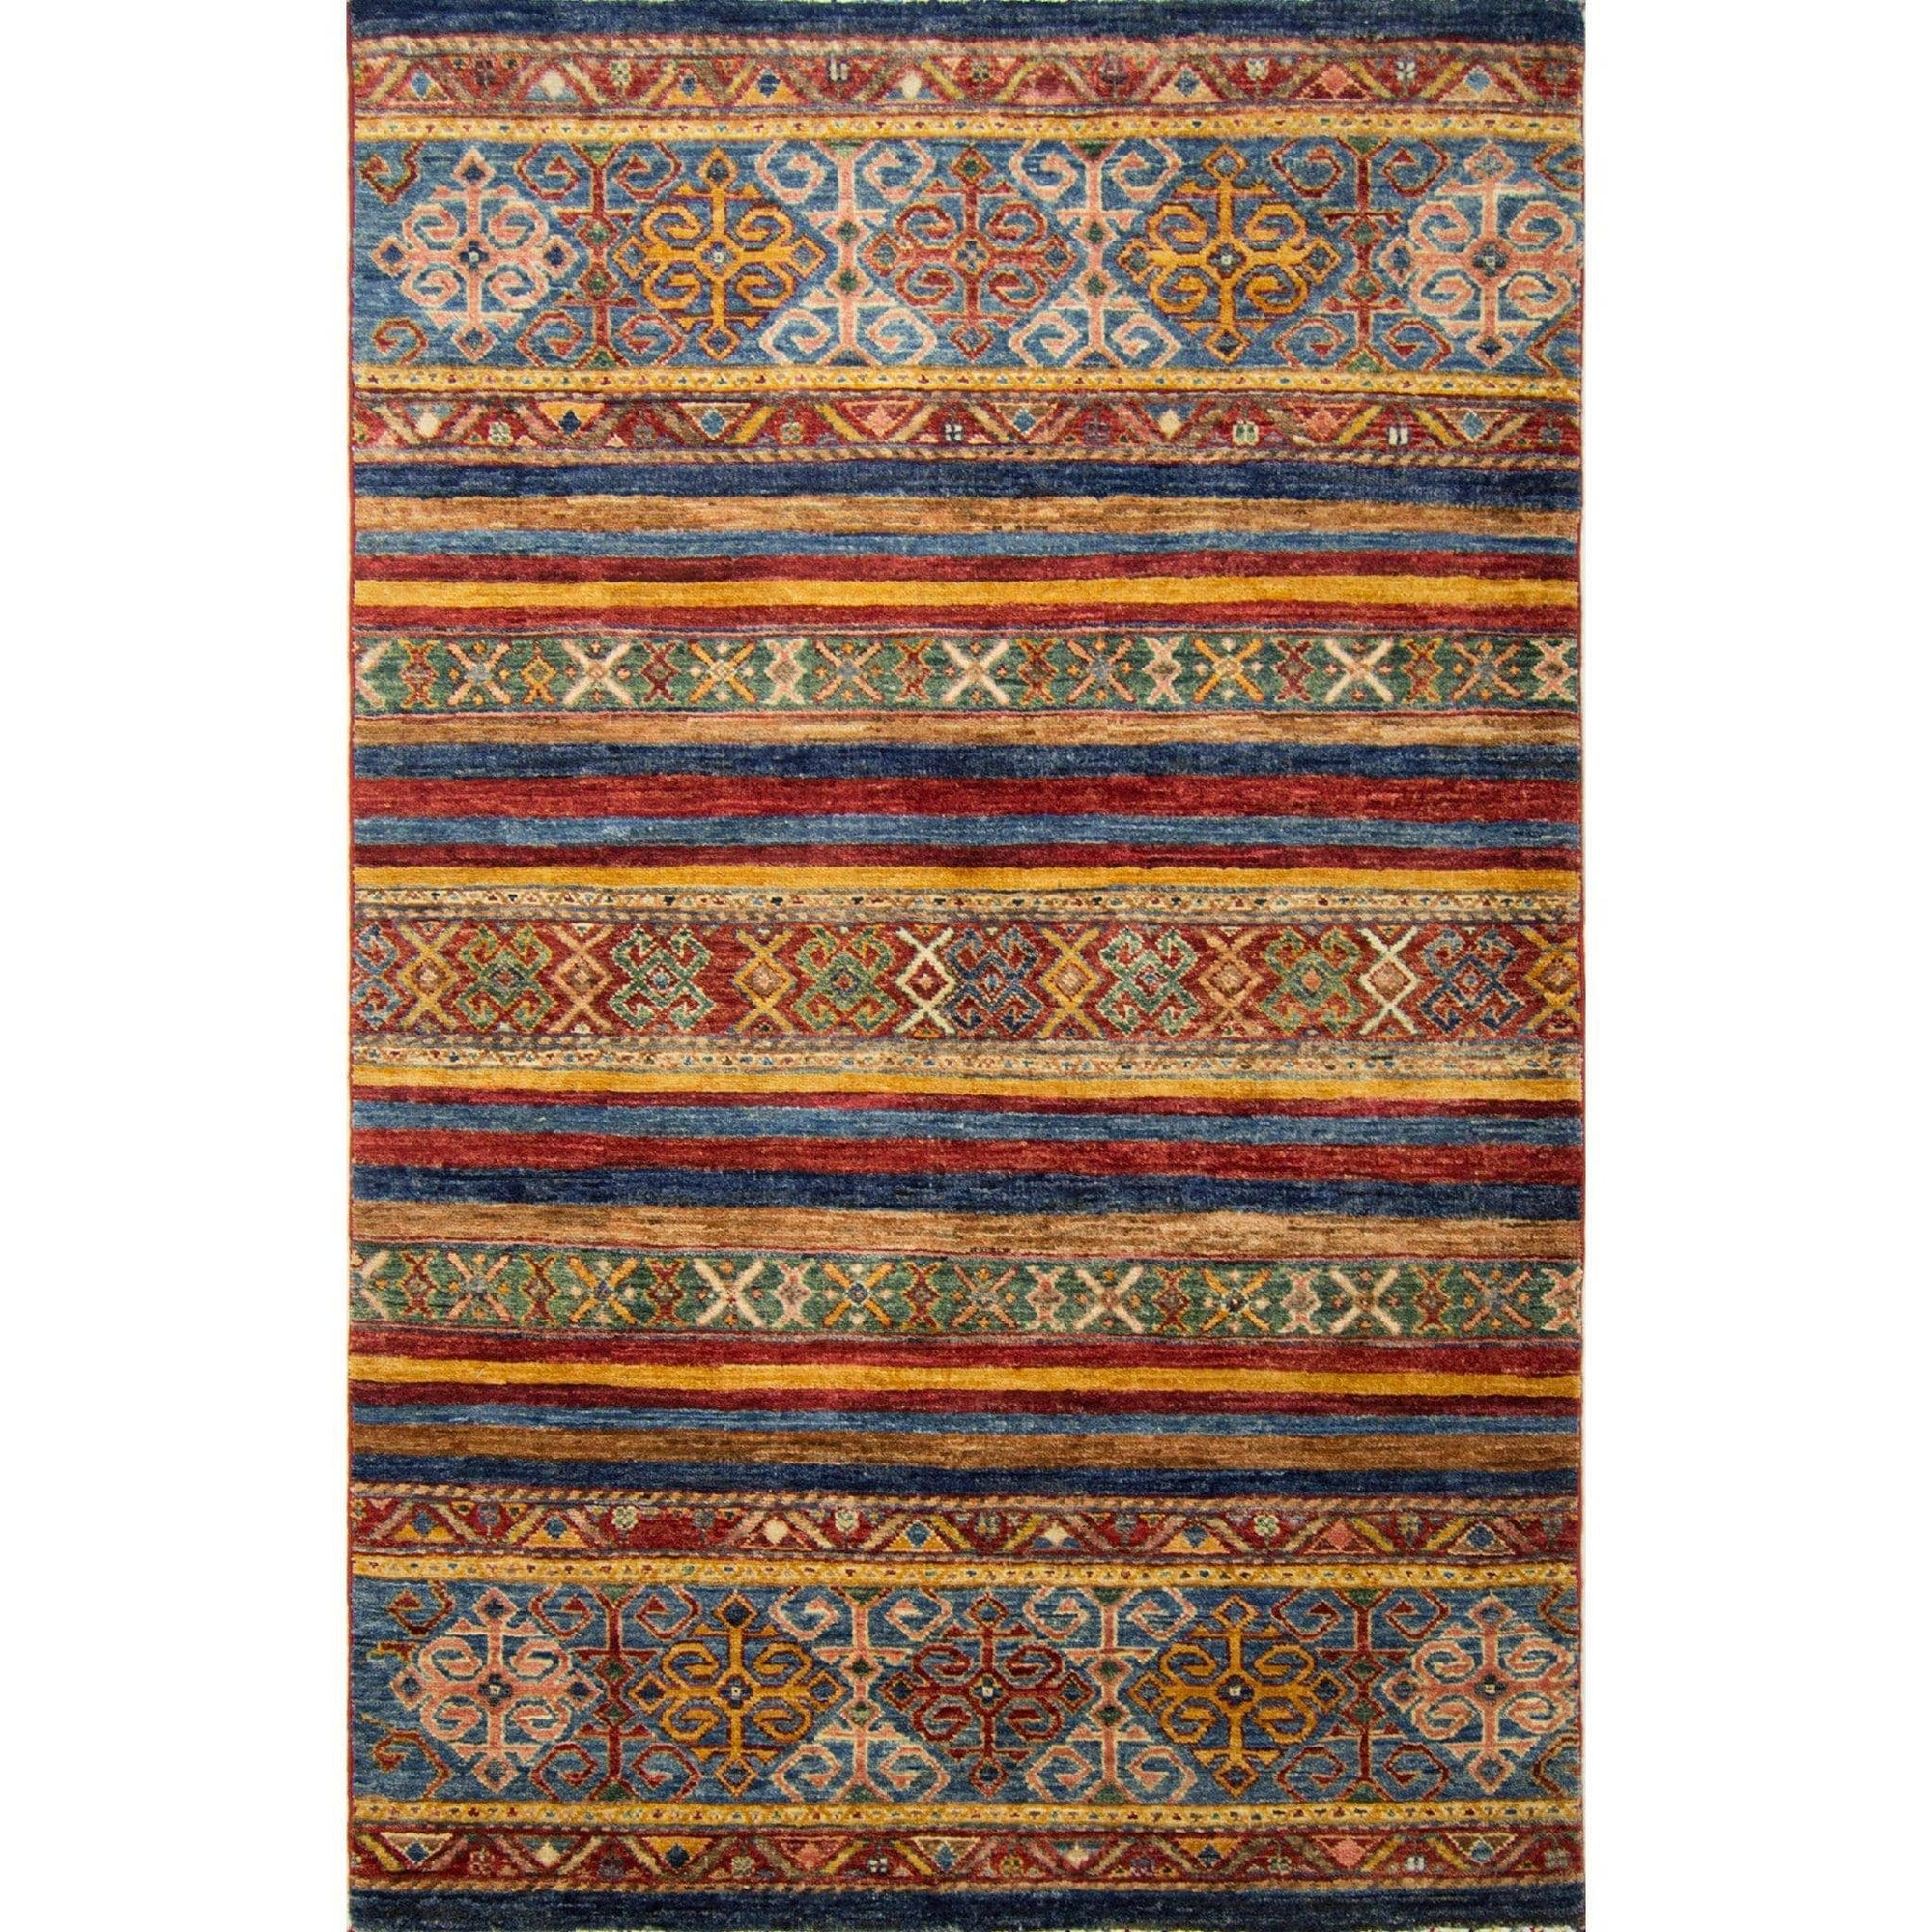 Hand-knotted Wool Khorjin Rug 105cm x 160cm Persian-Rug | House-of-Haghi | NewMarket | Auckland | NZ | Handmade Persian Rugs | Hand Knotted Persian Rugs